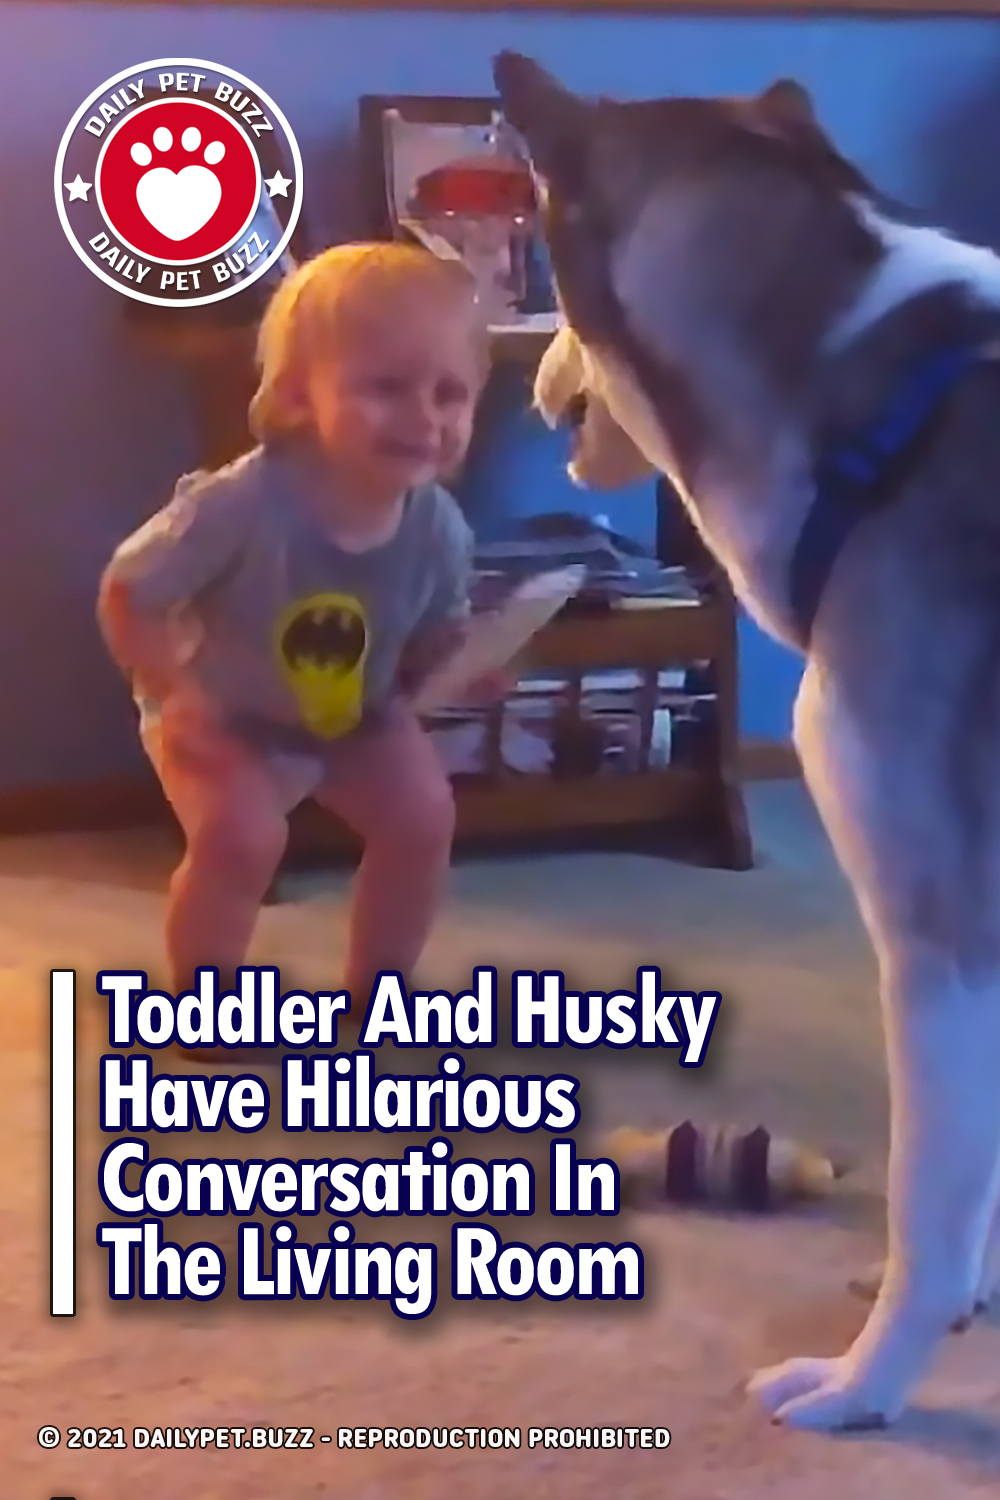 Toddler And Husky Have Hilarious Conversation In The Living Room